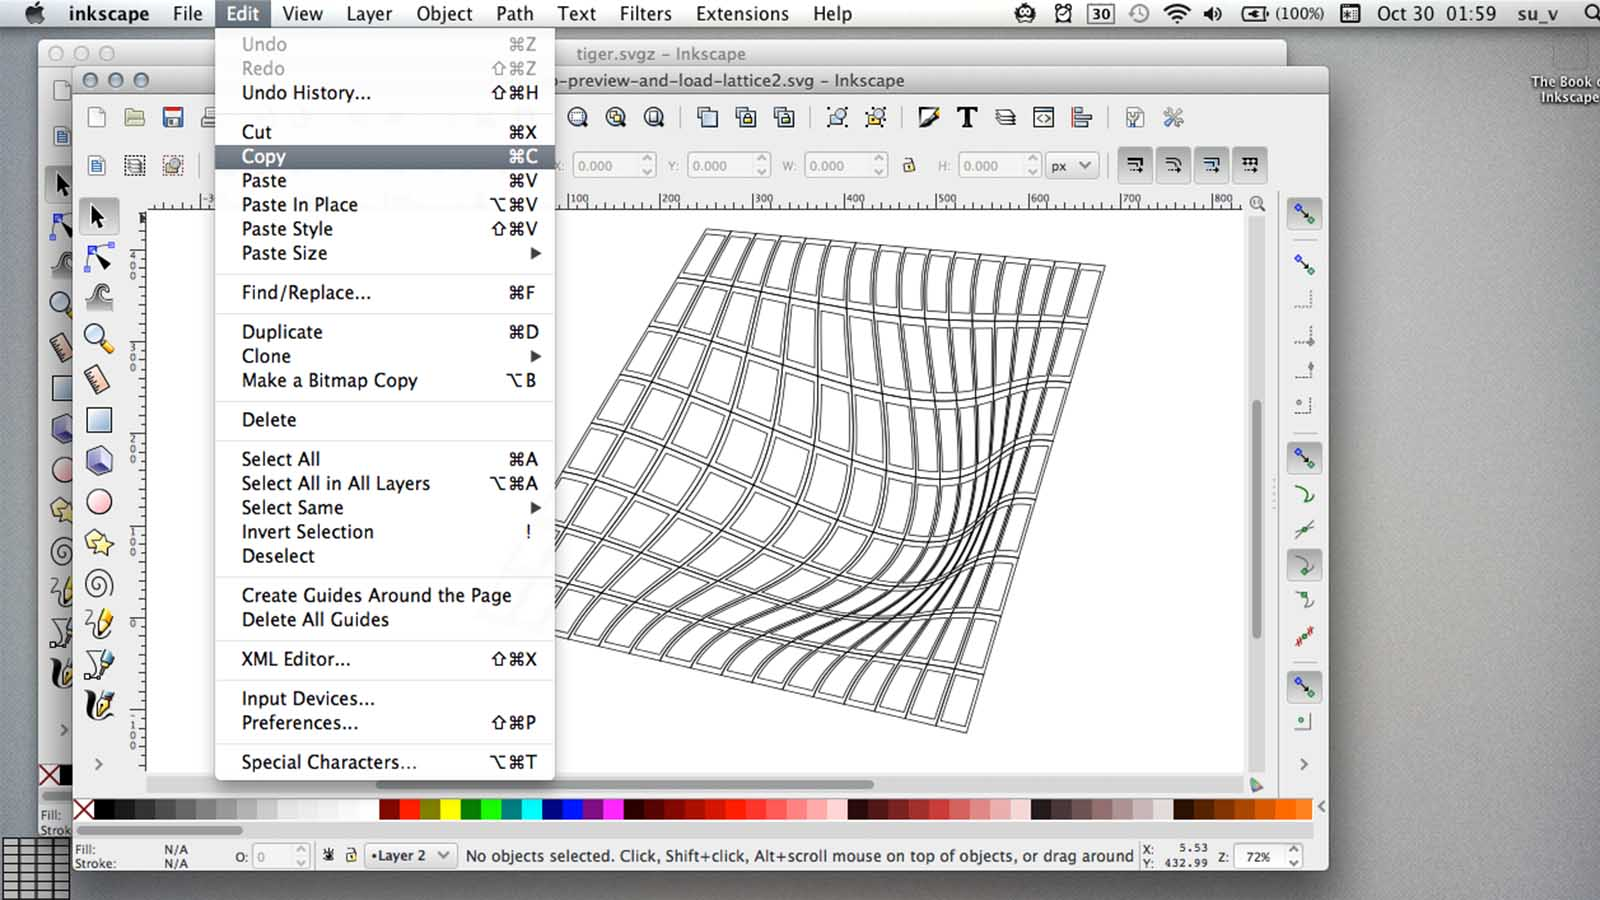 inkscape instead of adobe tools